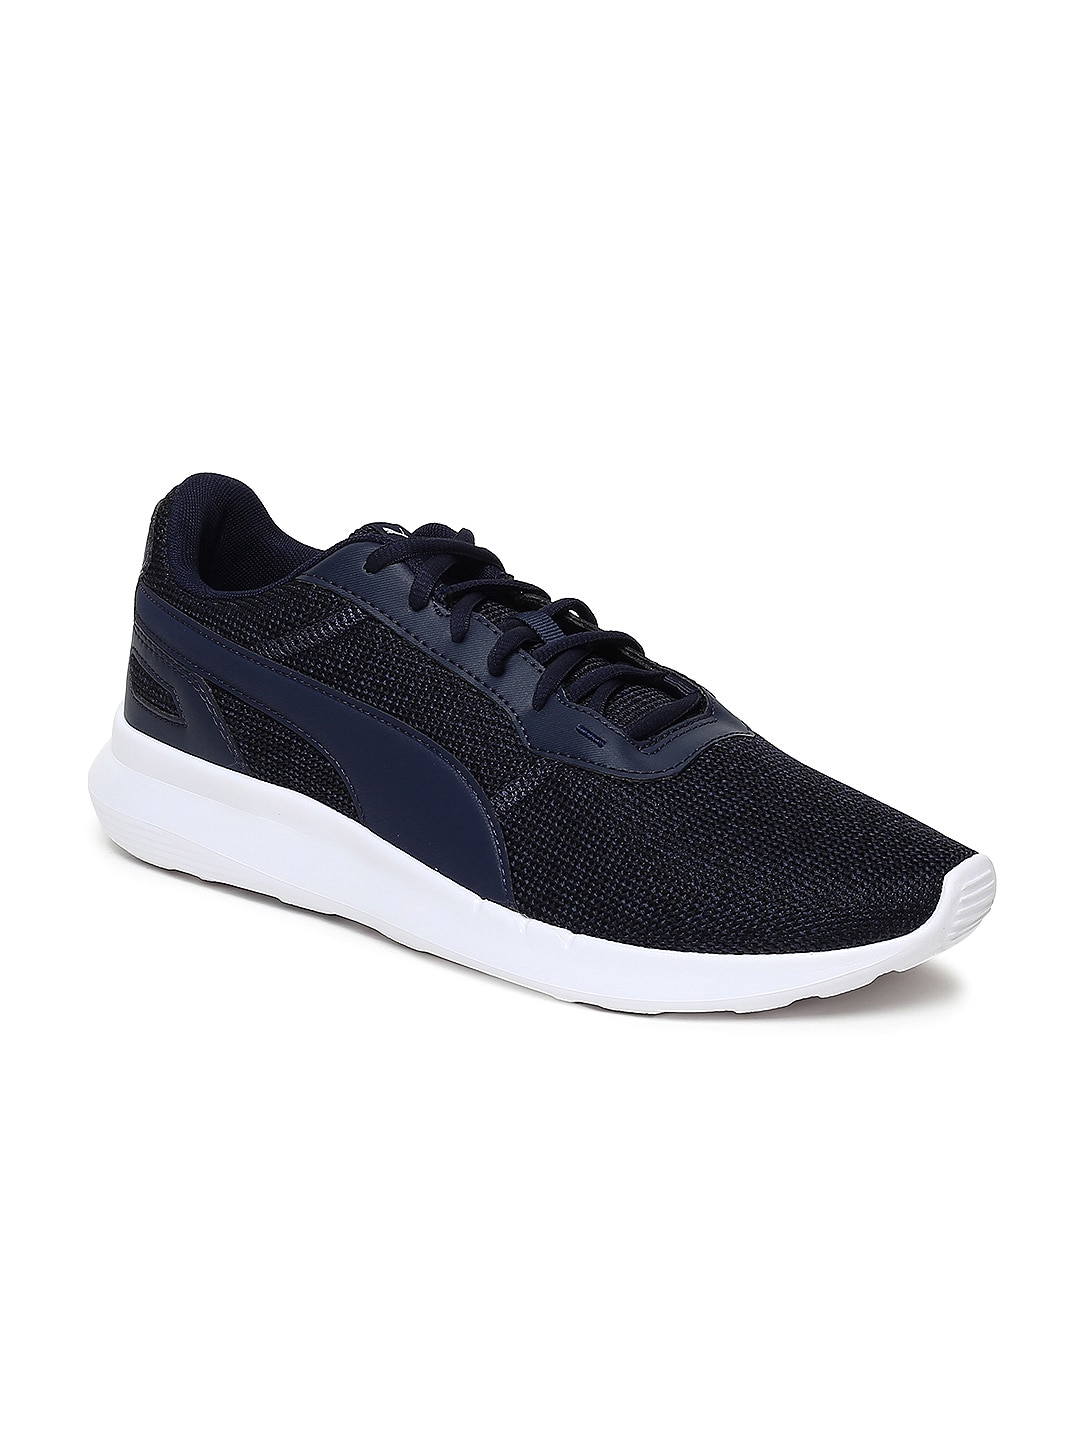 Buy Puma Unisex Black Textile Wired Knit Mid Top Running Shoes ... ba9c8aa04